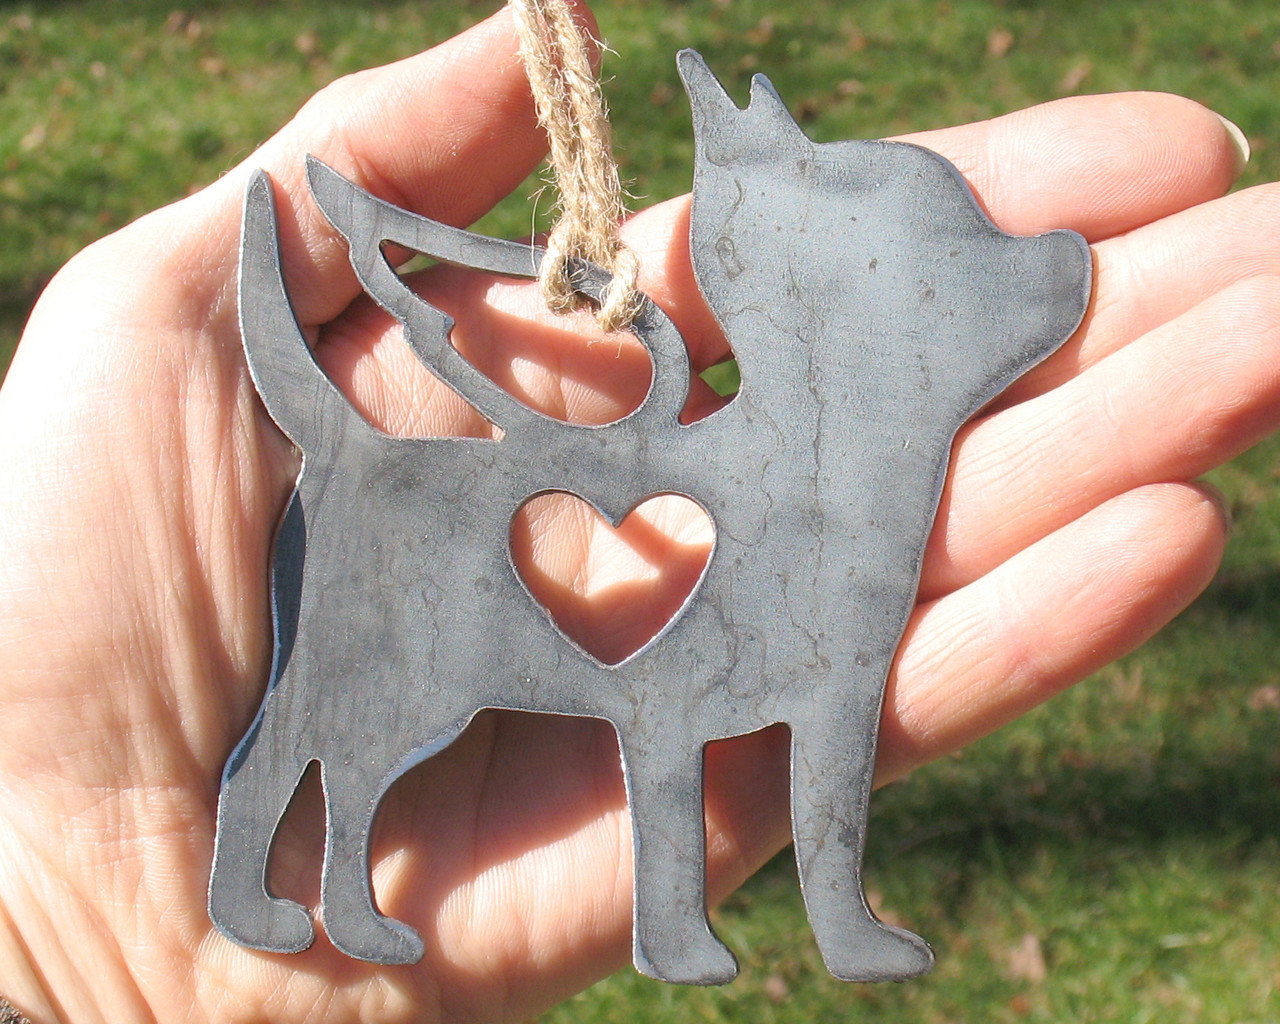 Chihuahua Dog Ornament 2 Pet Memorial W/ Angel Wings - Pet Loss Dog Sympathy Remembrance Gift - Metal Dog Christmas Ornament